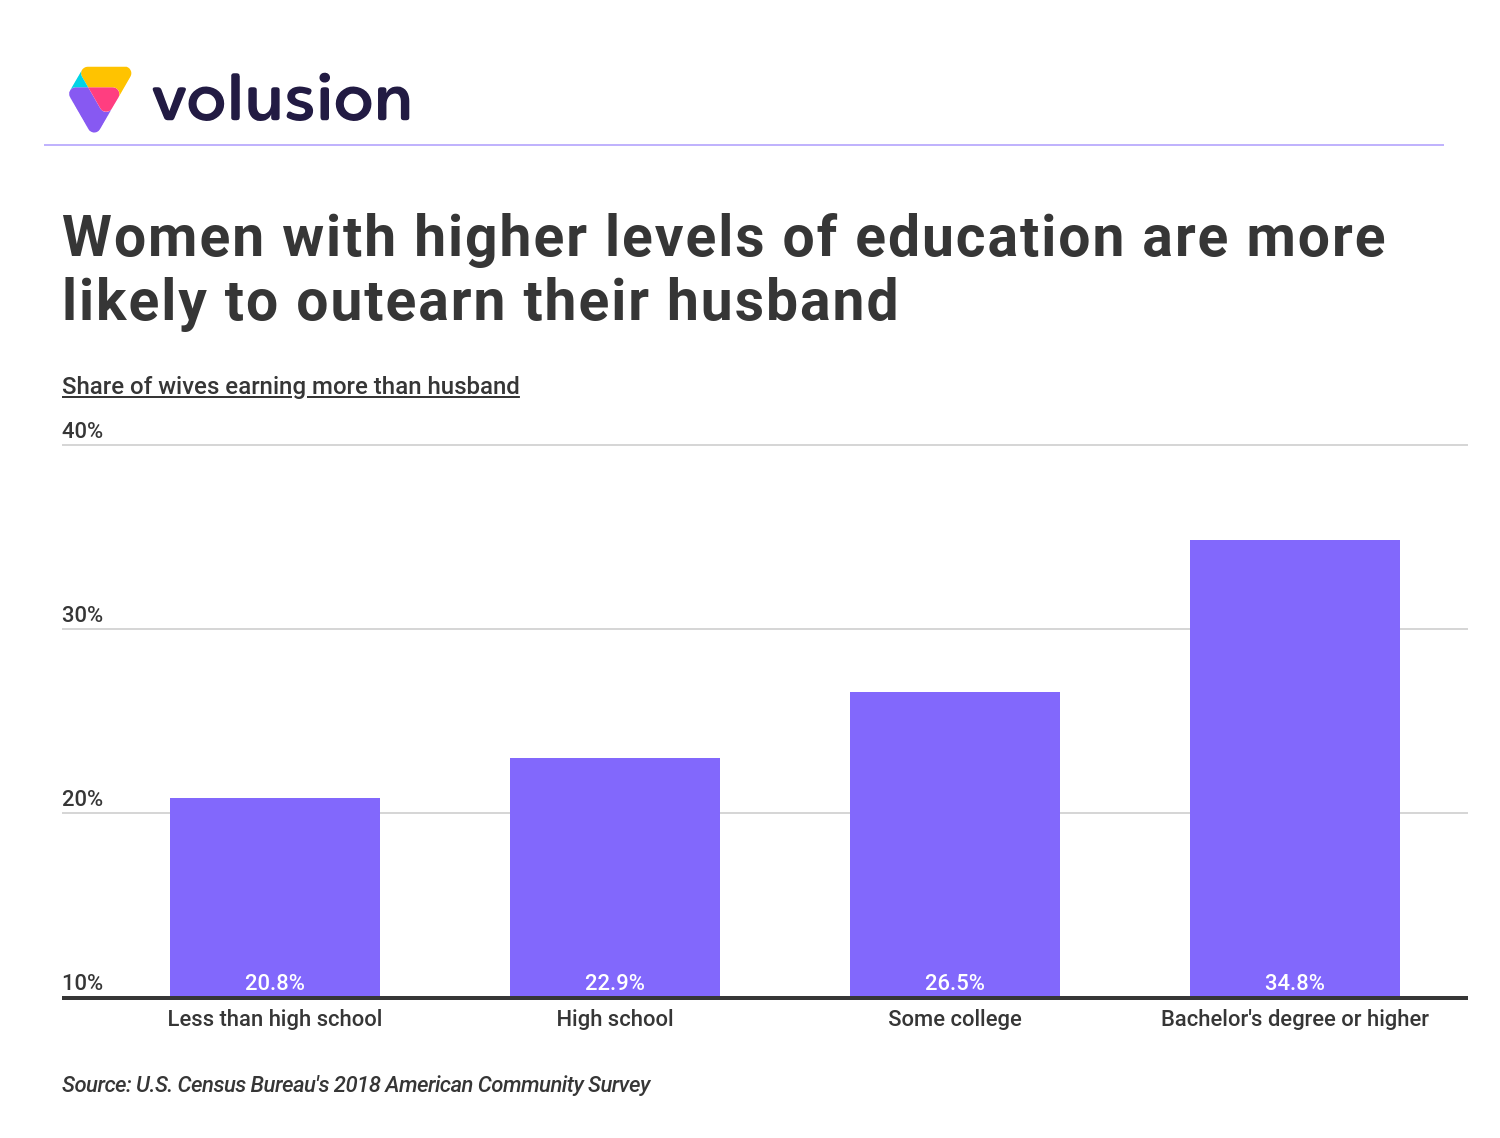 Bar chart showing that the percentage of female breadwinners increases with higher levels of education